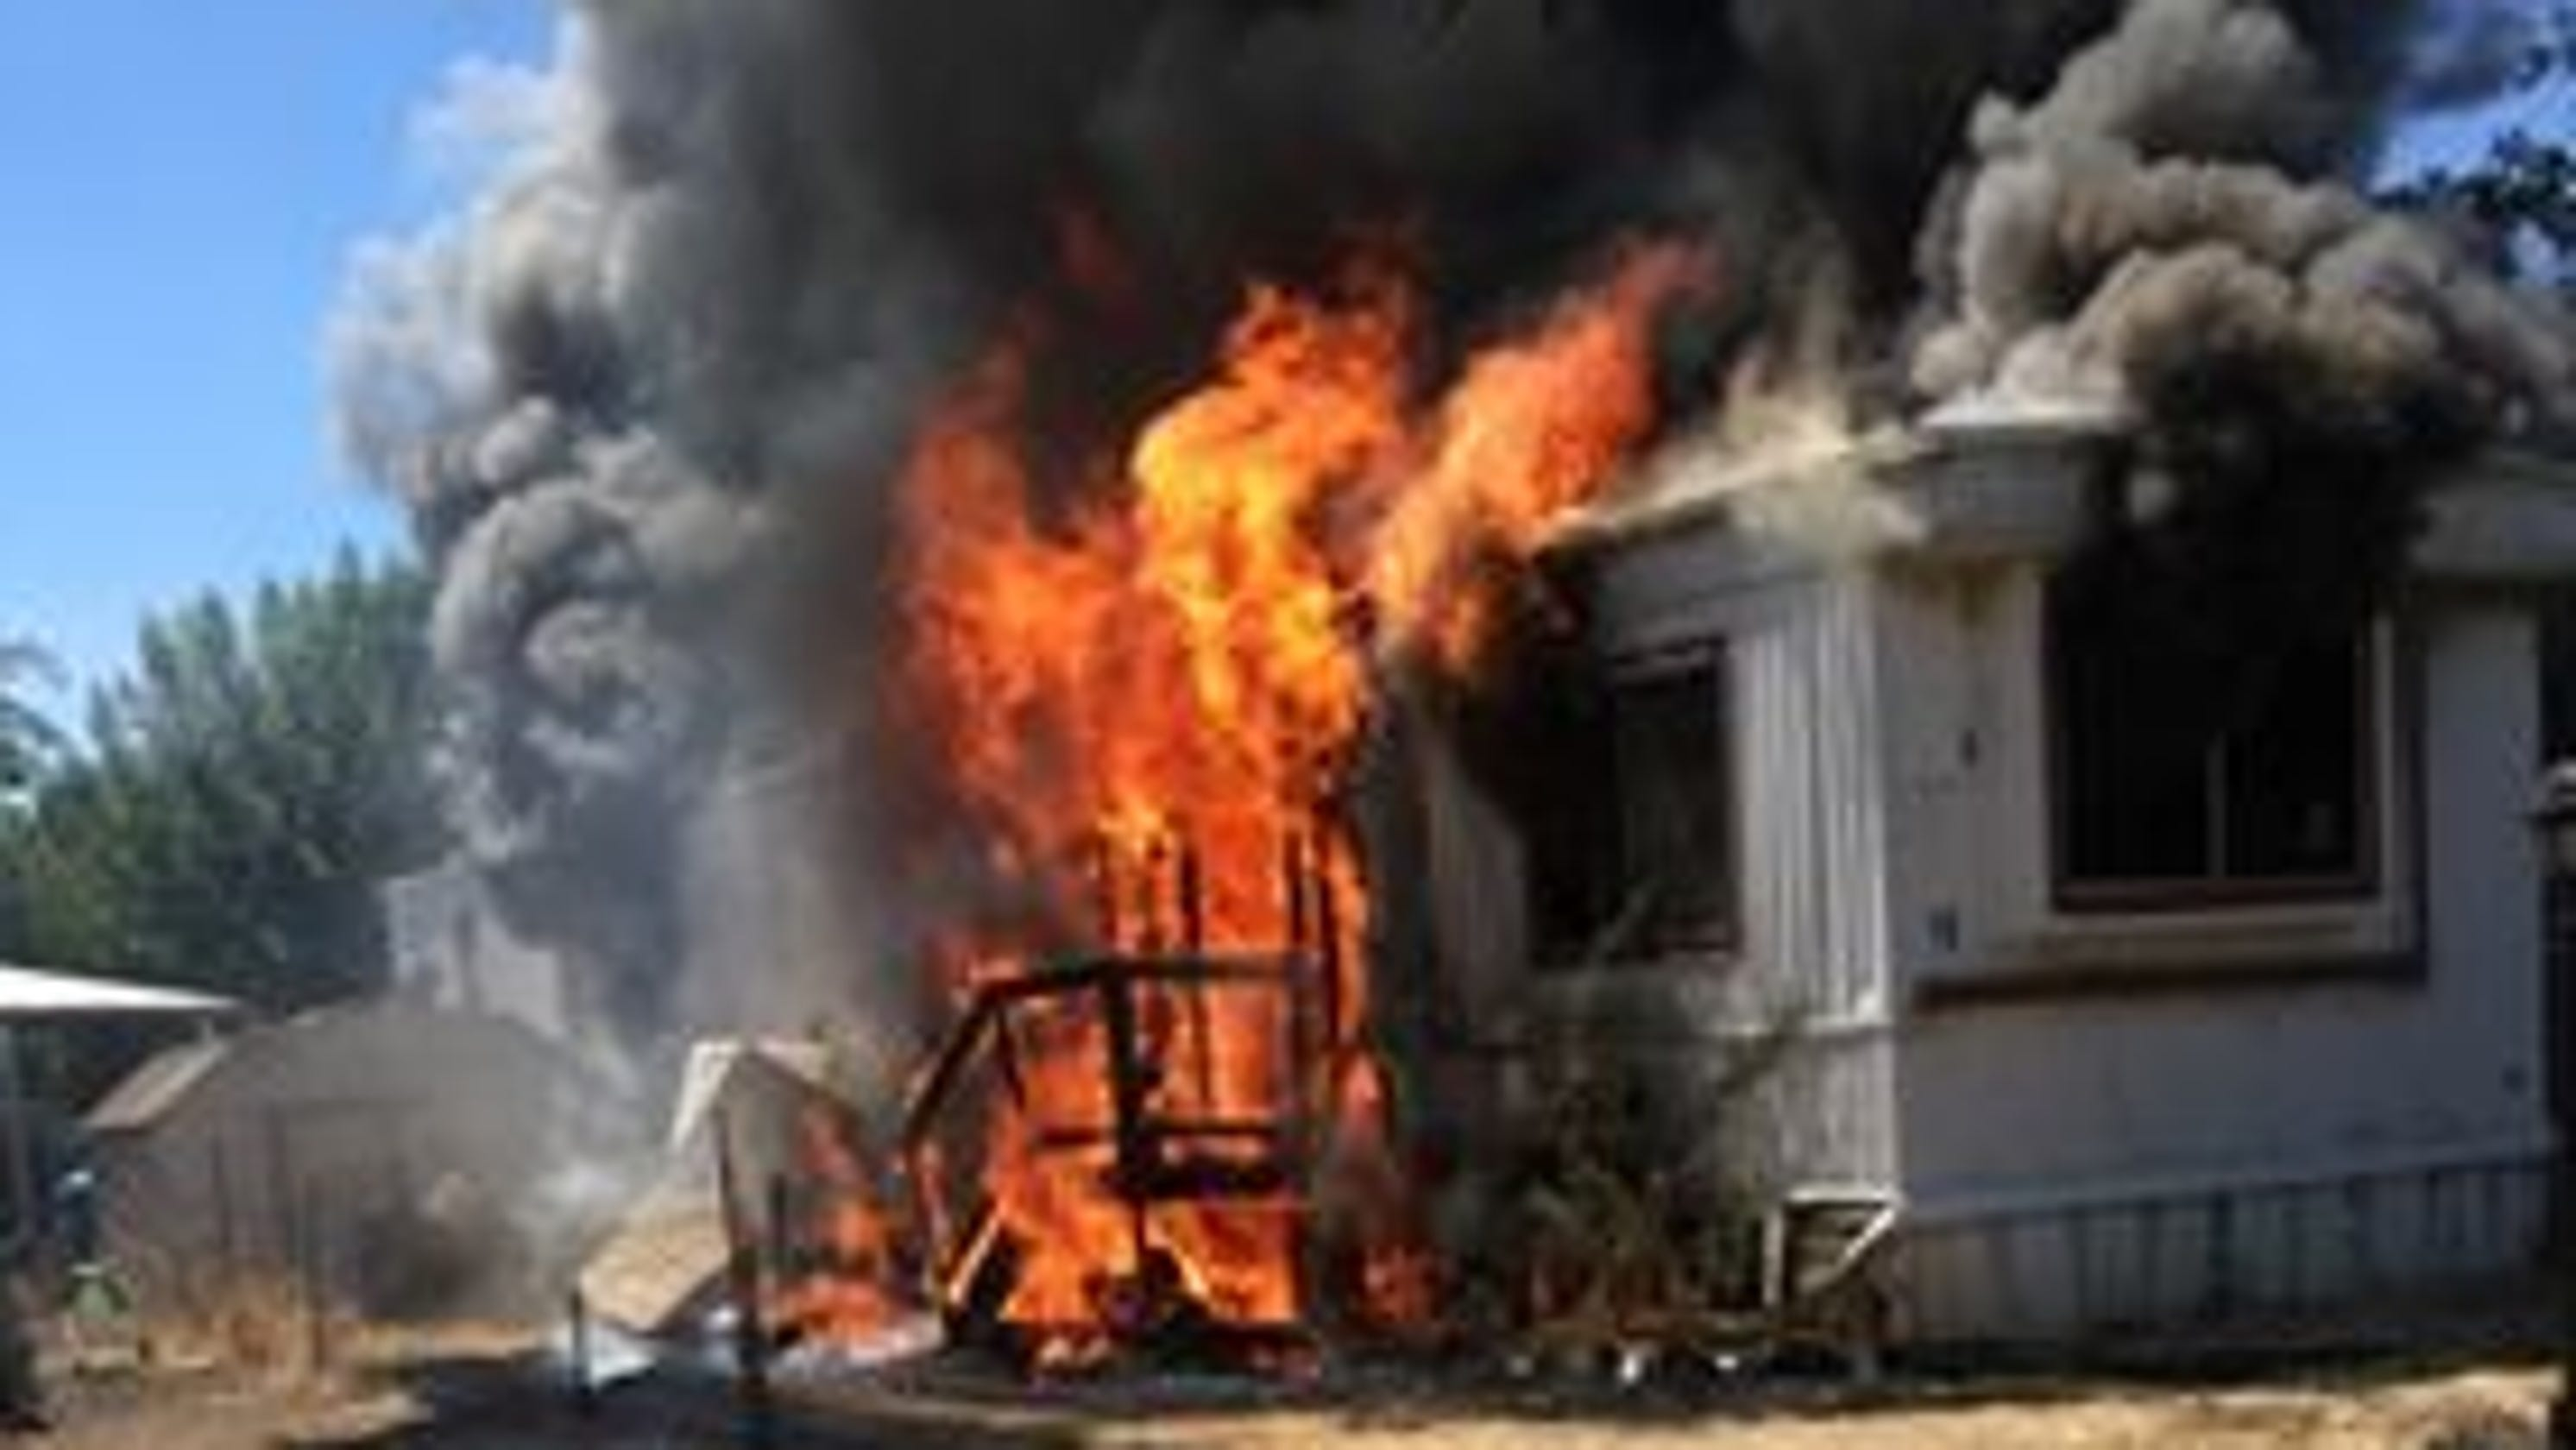 7dfcd321-1f82-4efc-870f-c225bb39afe1-firemobile Pics Of Burned Out Mobile Homes on flowers mobile home, new moon mobile home, broken mobile home, real estate mobile home, sunrise mobile home, burning mobile home, avalanche mobile home, frozen mobile home,